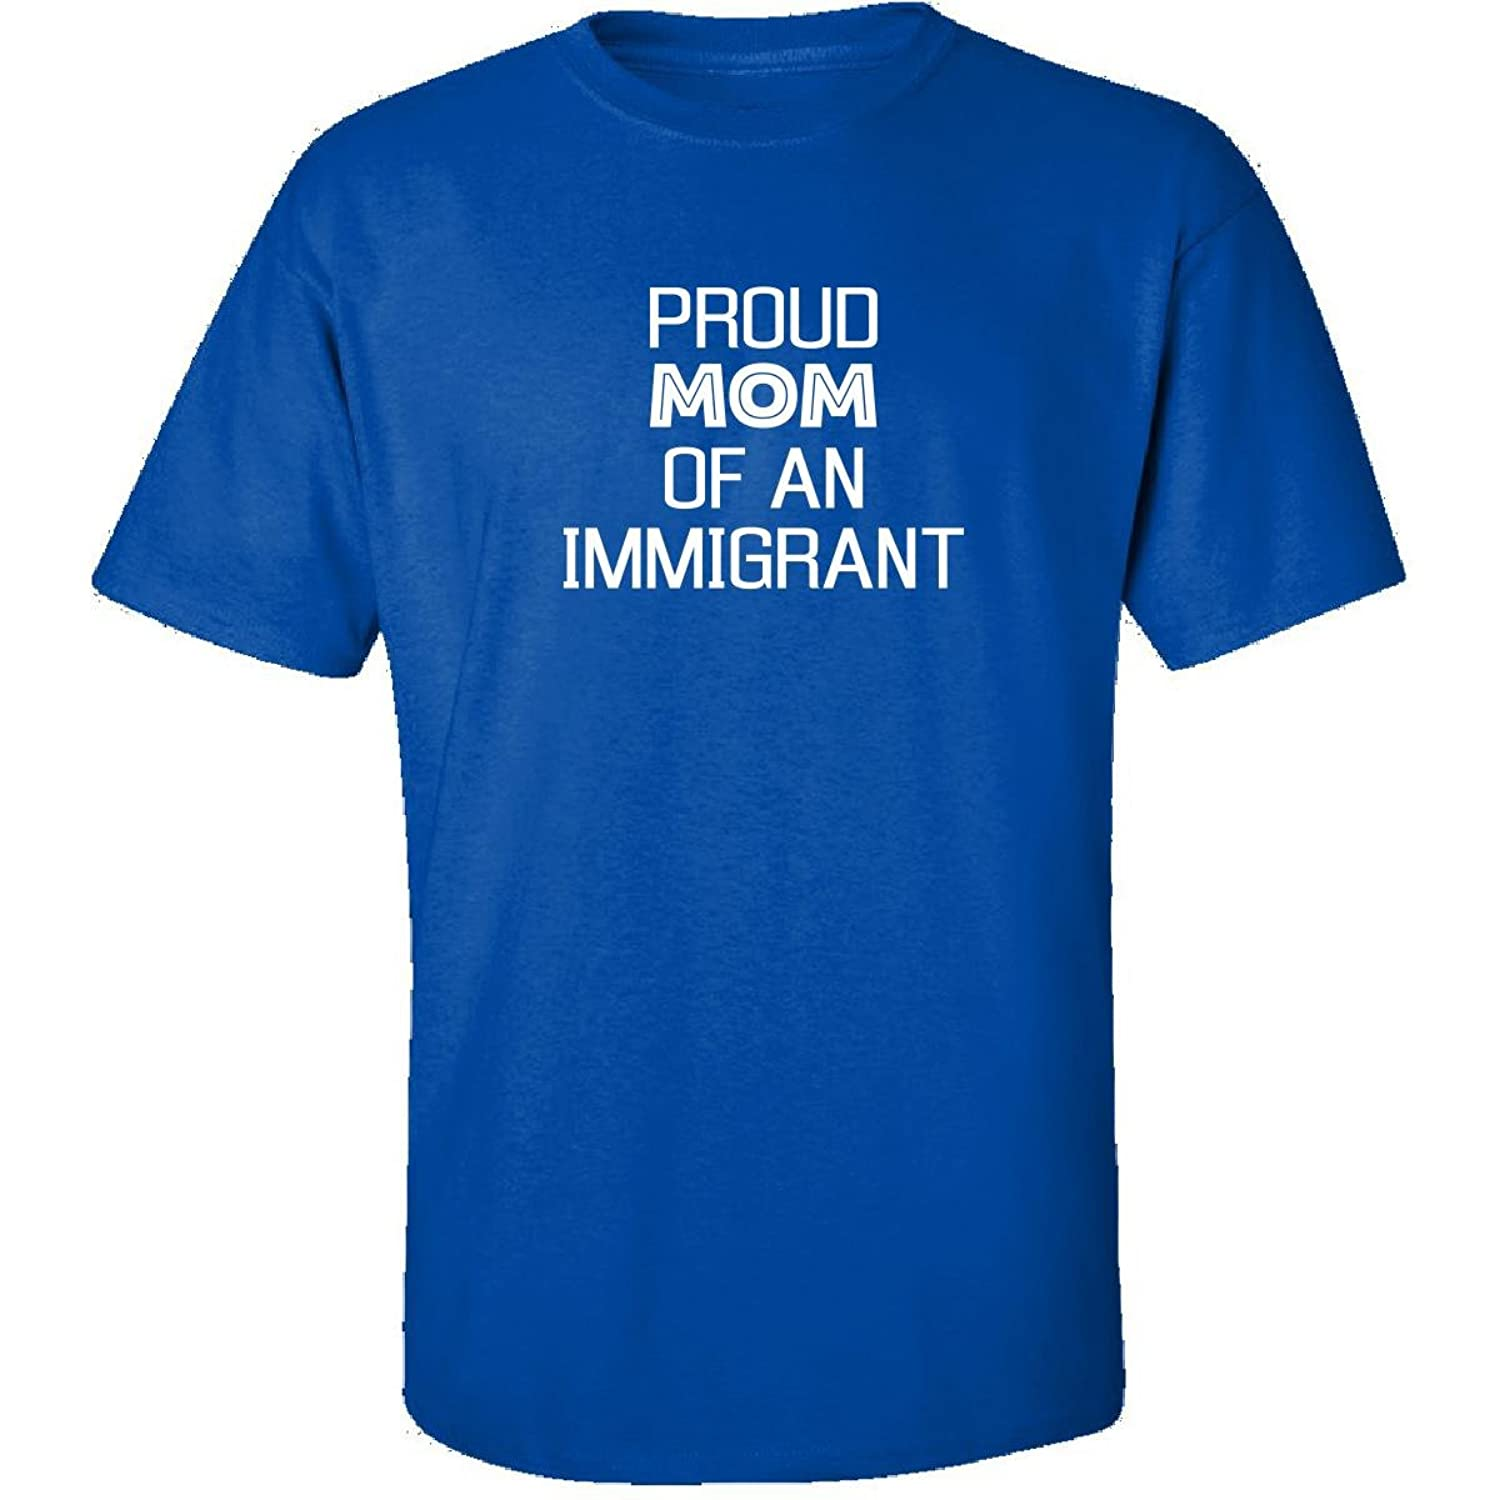 Proud Mom Of An Immigrant No Ban And No Wall - Adult Shirt